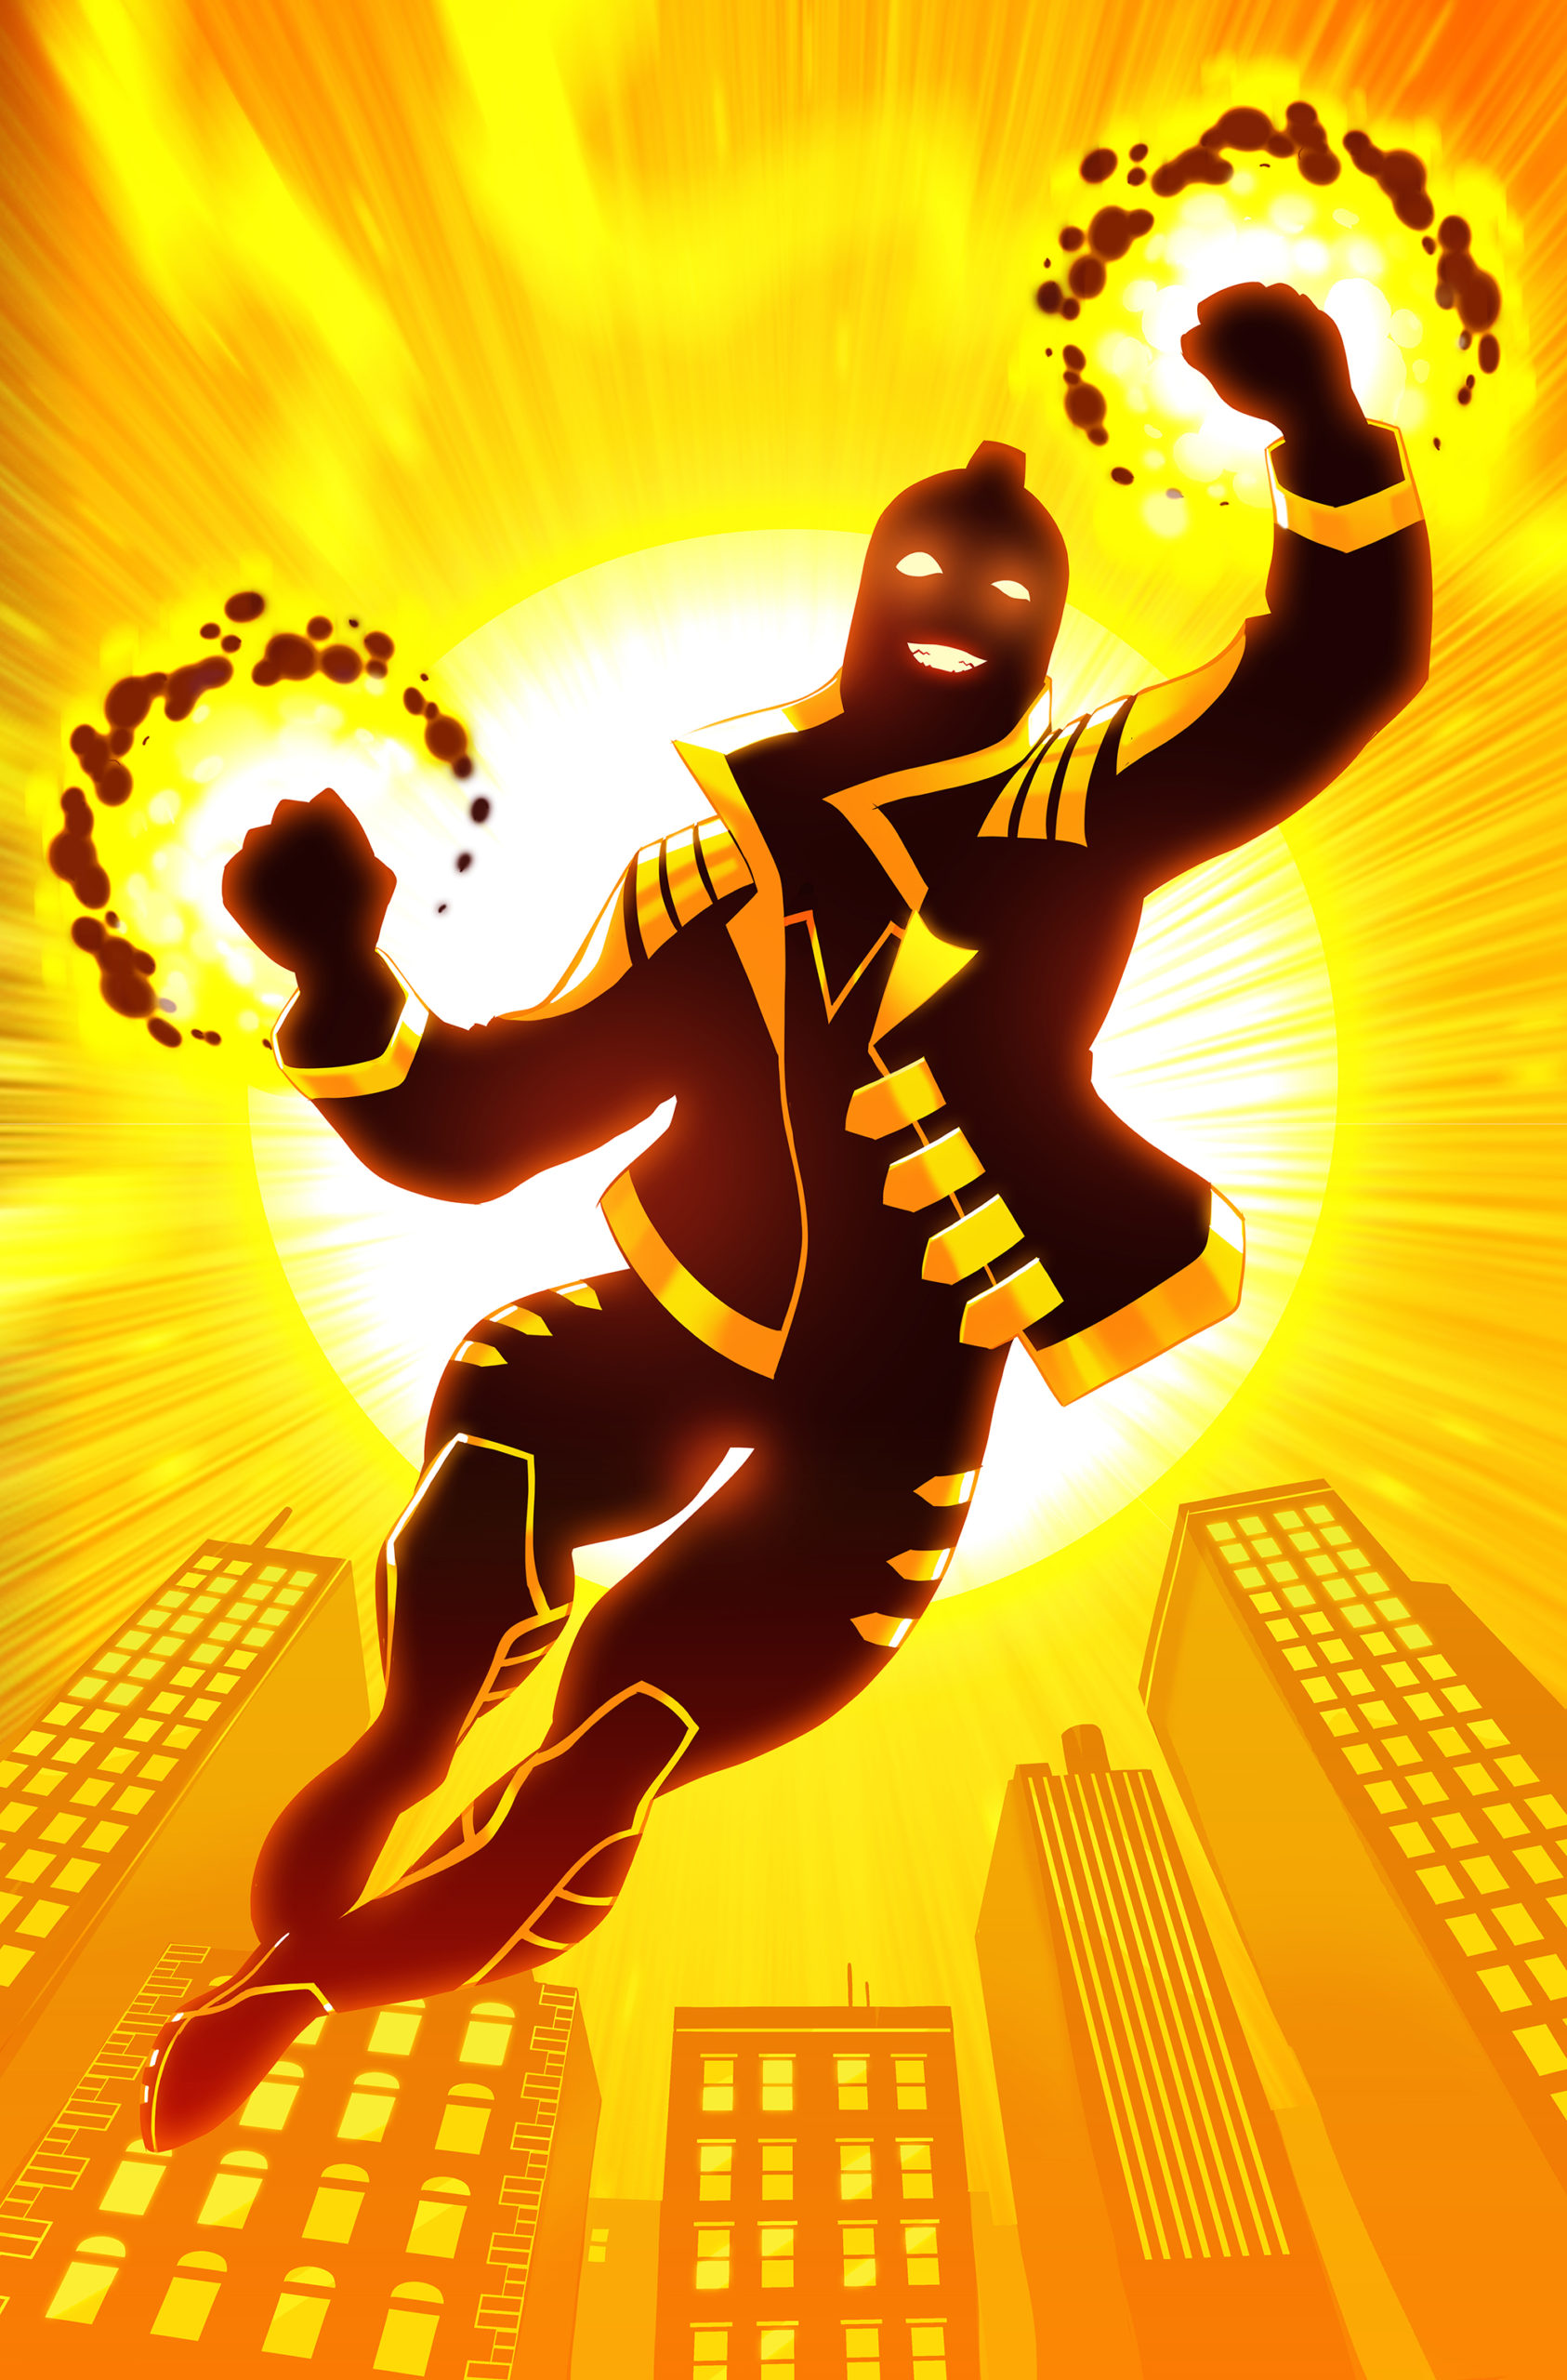 Depiction of The Ray flying in front of the son with a smile and fists ablaze. The Ray is a gay freedom fighter in the DC Universe.